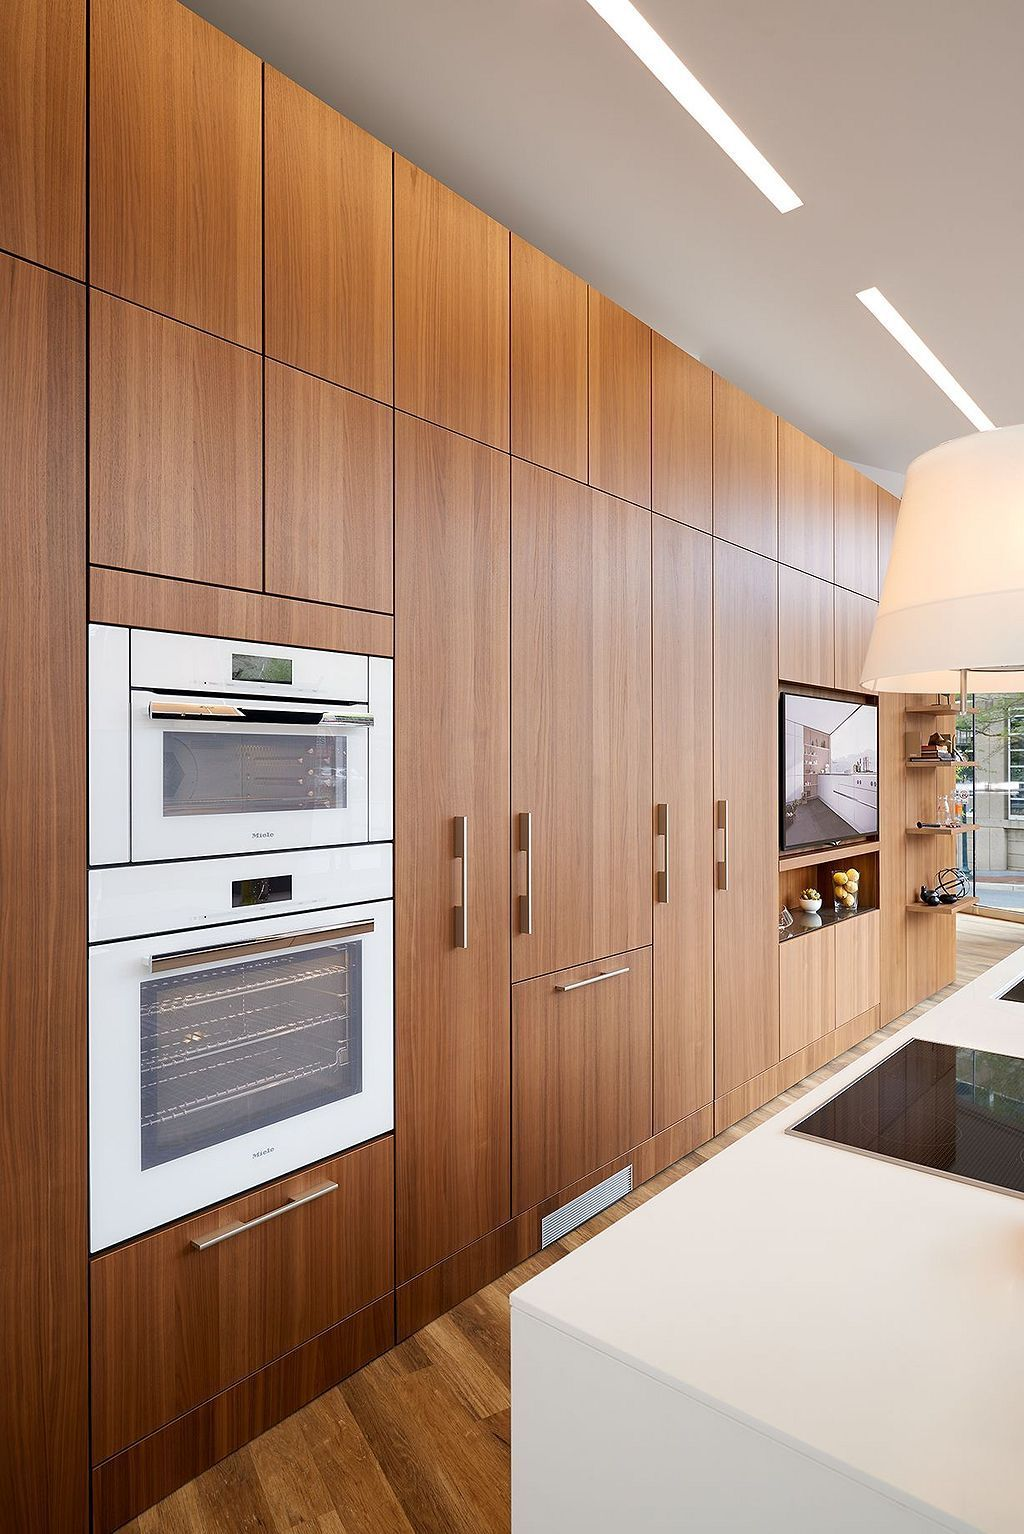 Pin By Sasha Bain On Contemporary Kitchen Remodeling In 2020 Modern Walnut Kitchen Modern Kitchen Cabinet Design Walnut Kitchen Cabinets